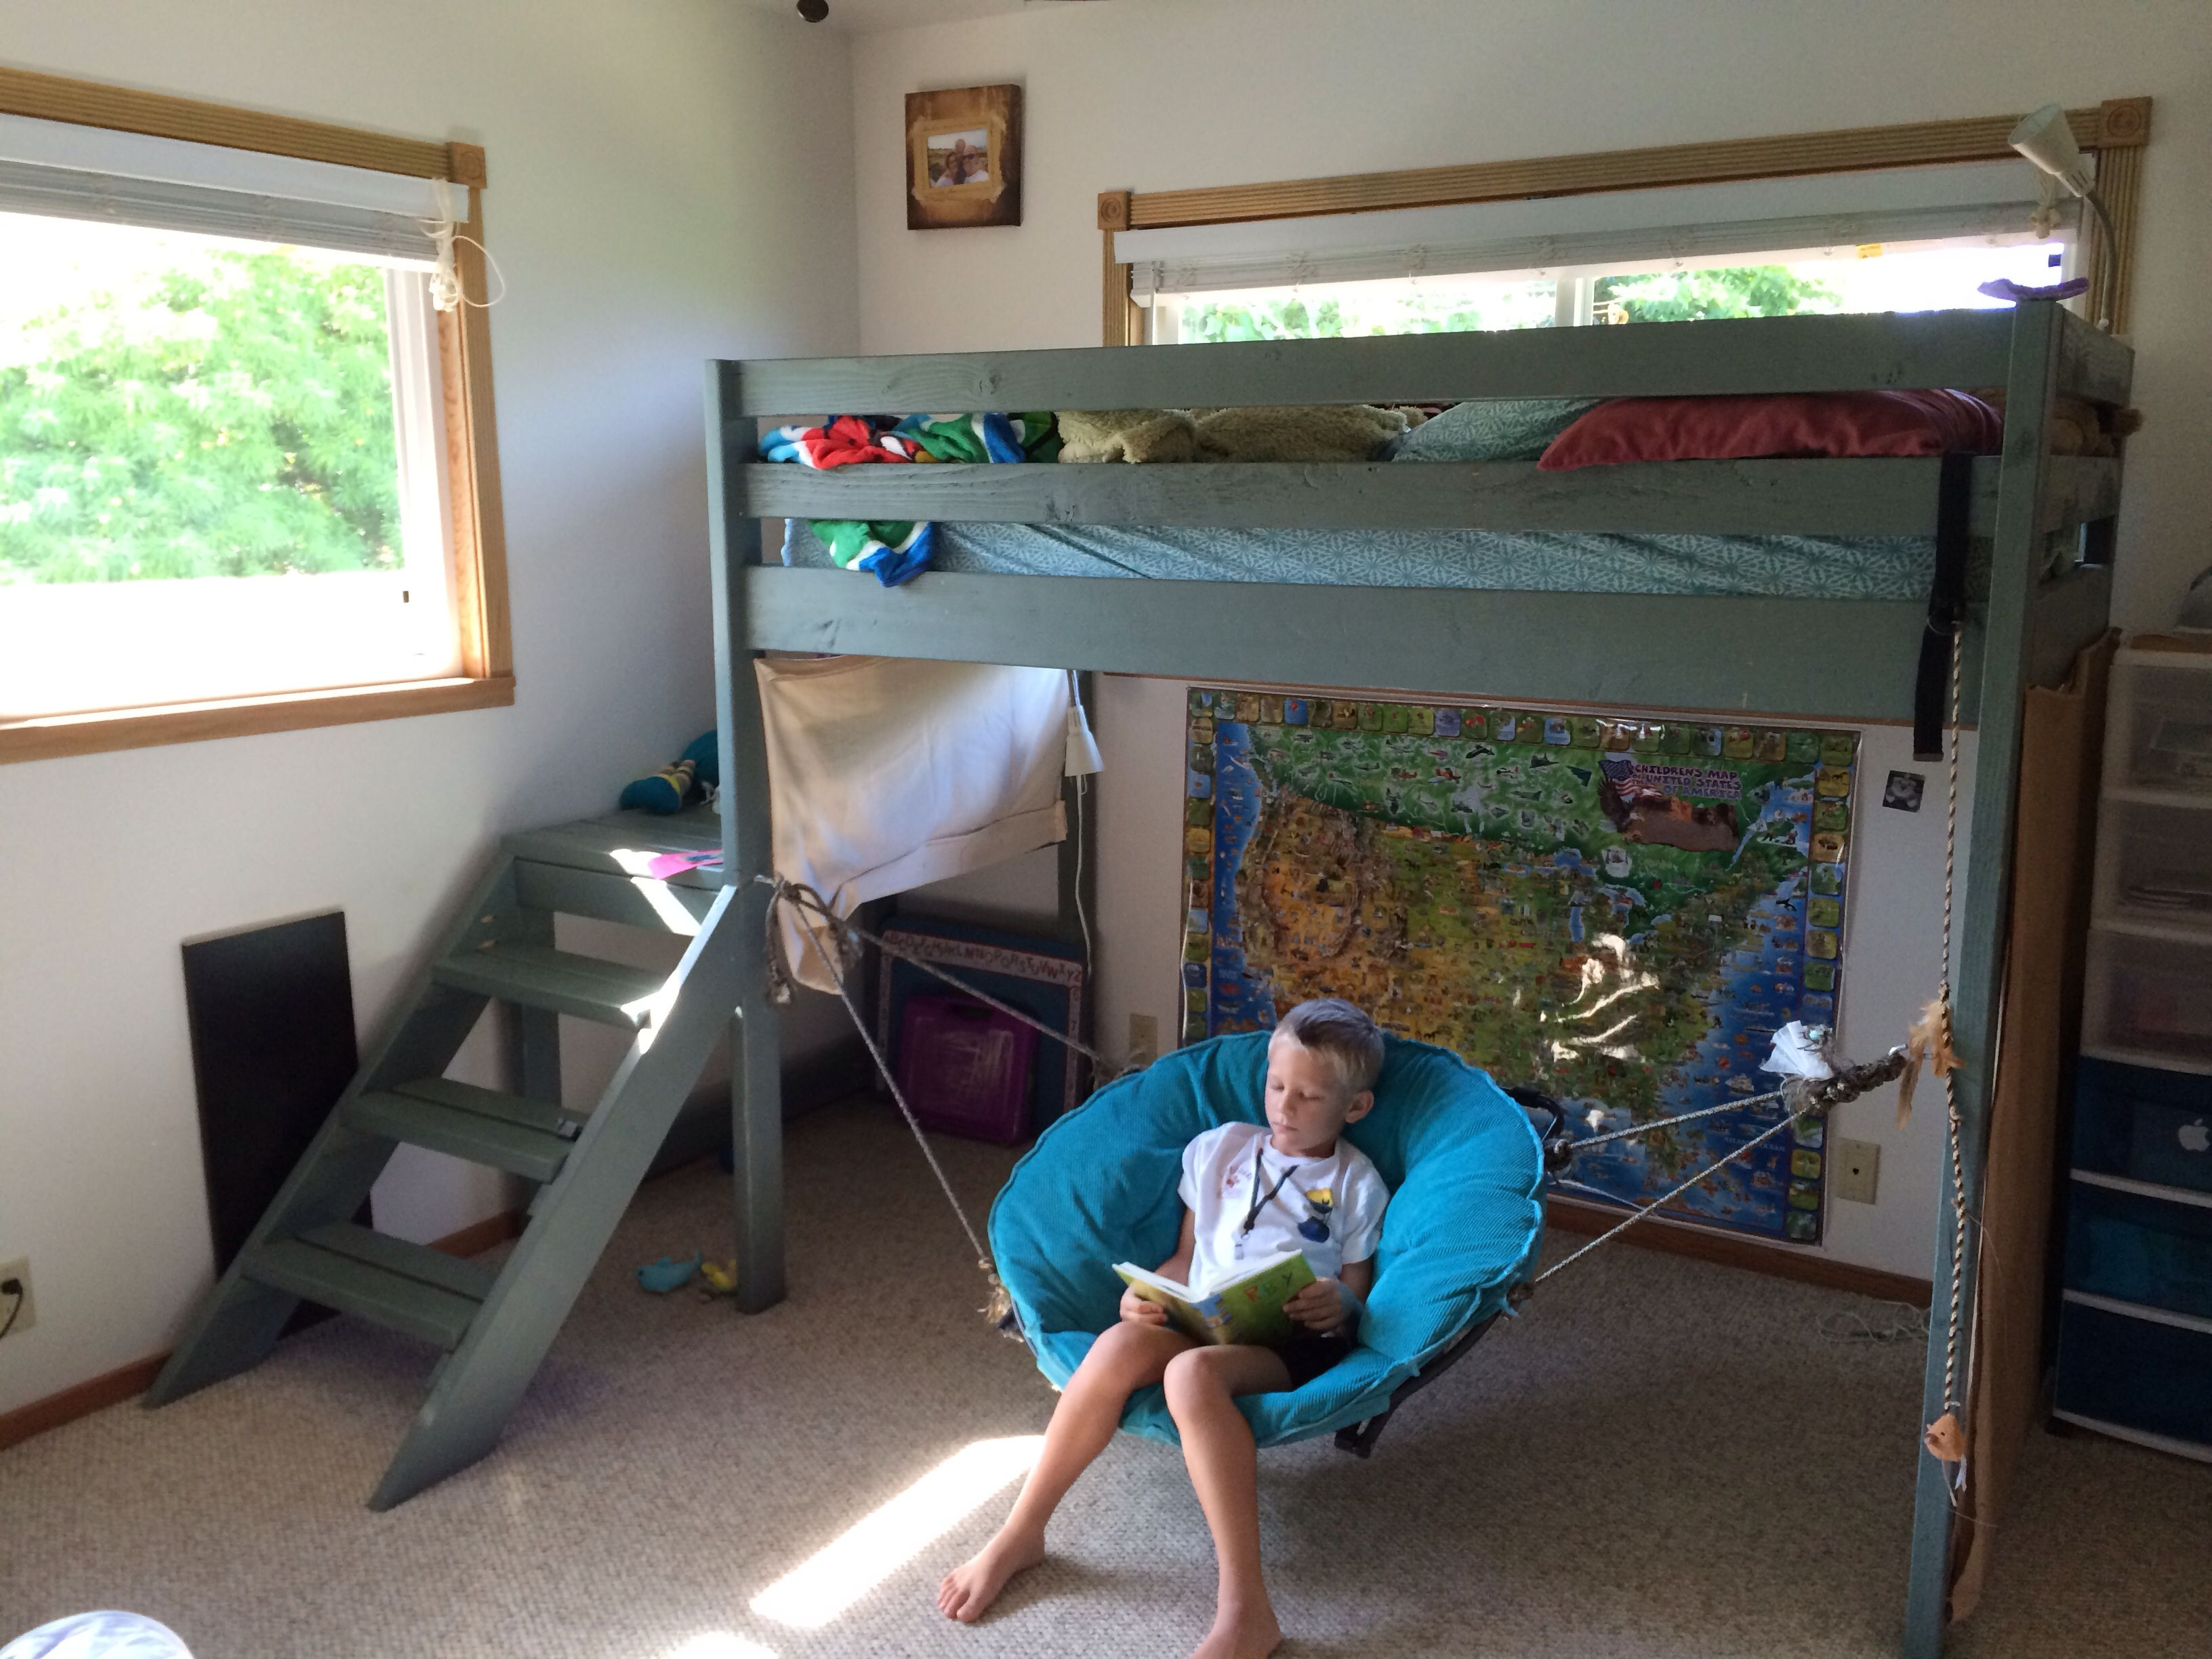 We made this bed using plans from Ana White's website